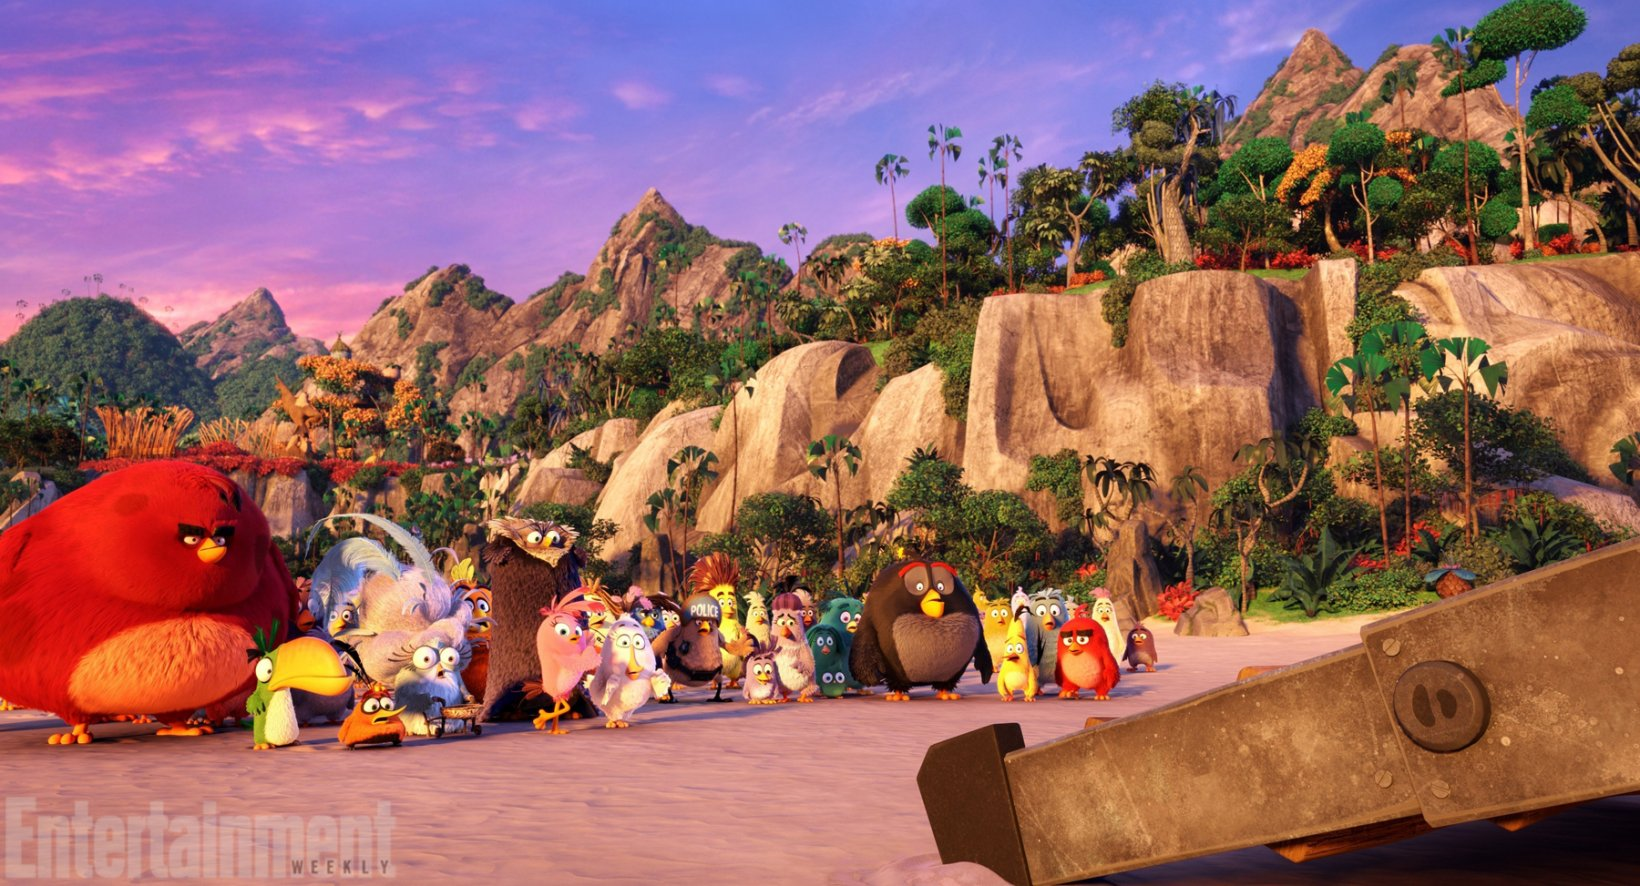 New images from the Angry Birds movie show off a pig dad